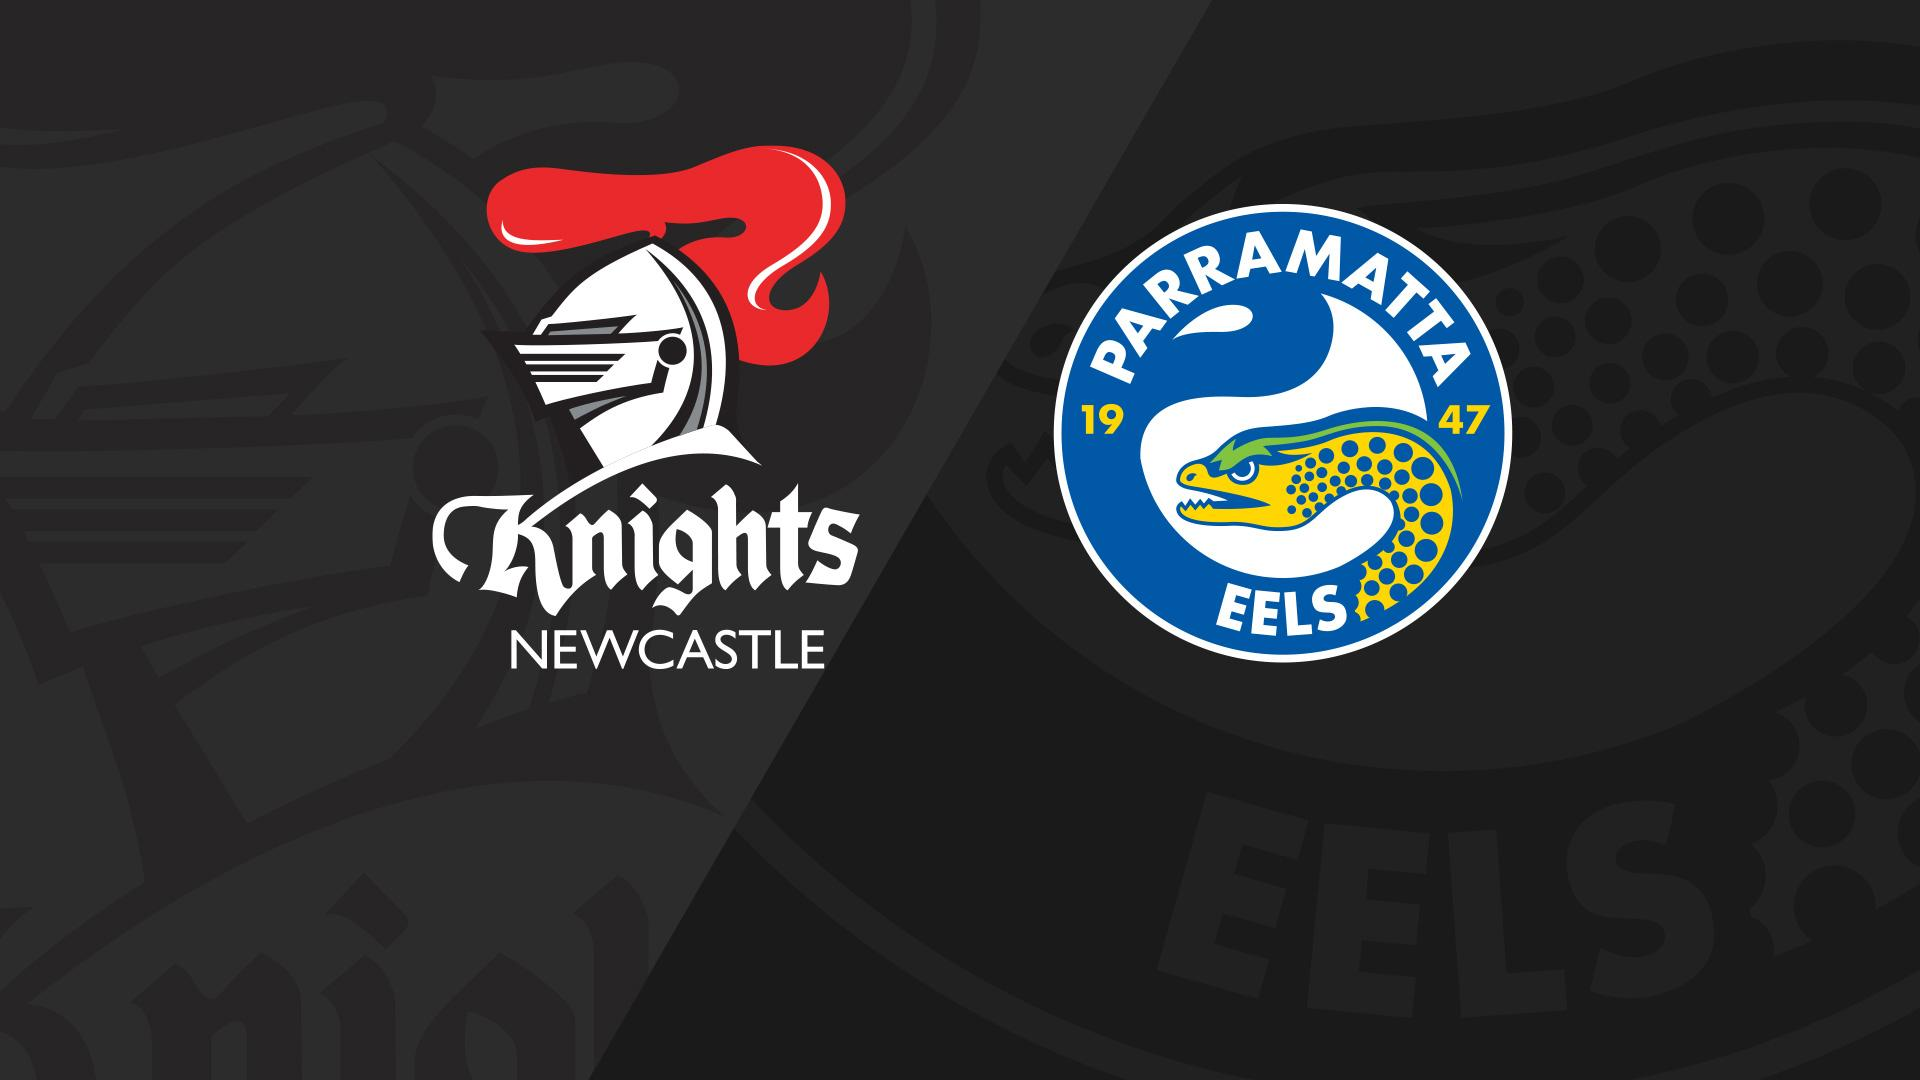 Full Match Replay: Knights v Eels - Round 18, 2018